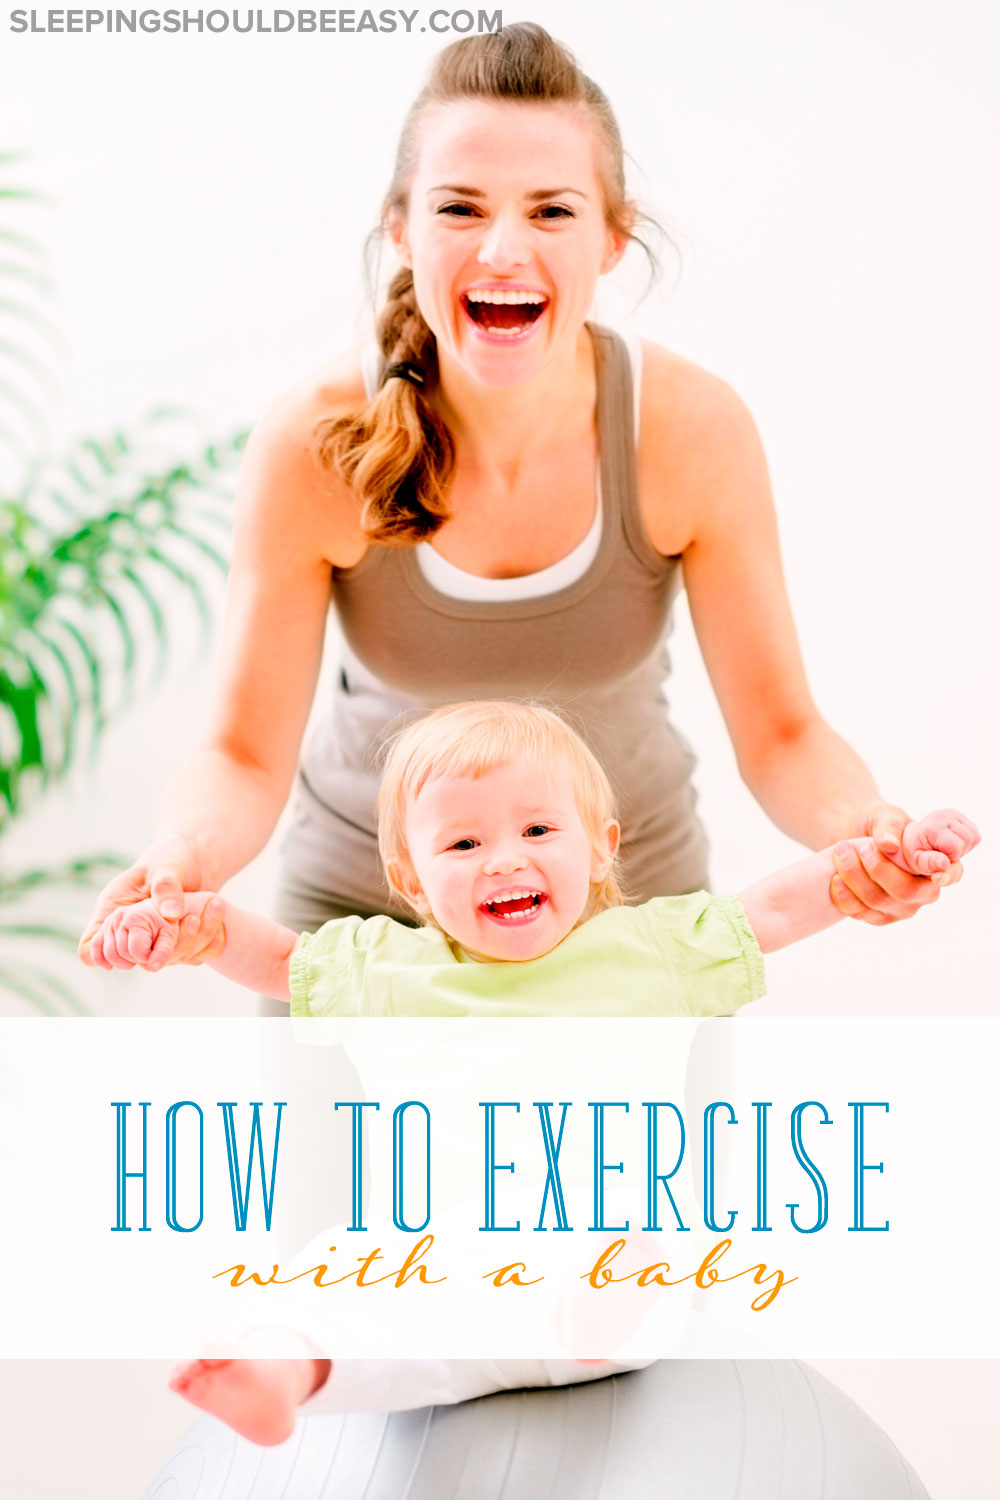 Yes, you CAN exercise as a mom, whether your kids are with you or at home. Read several ideas on how to exercise while caring for young children.